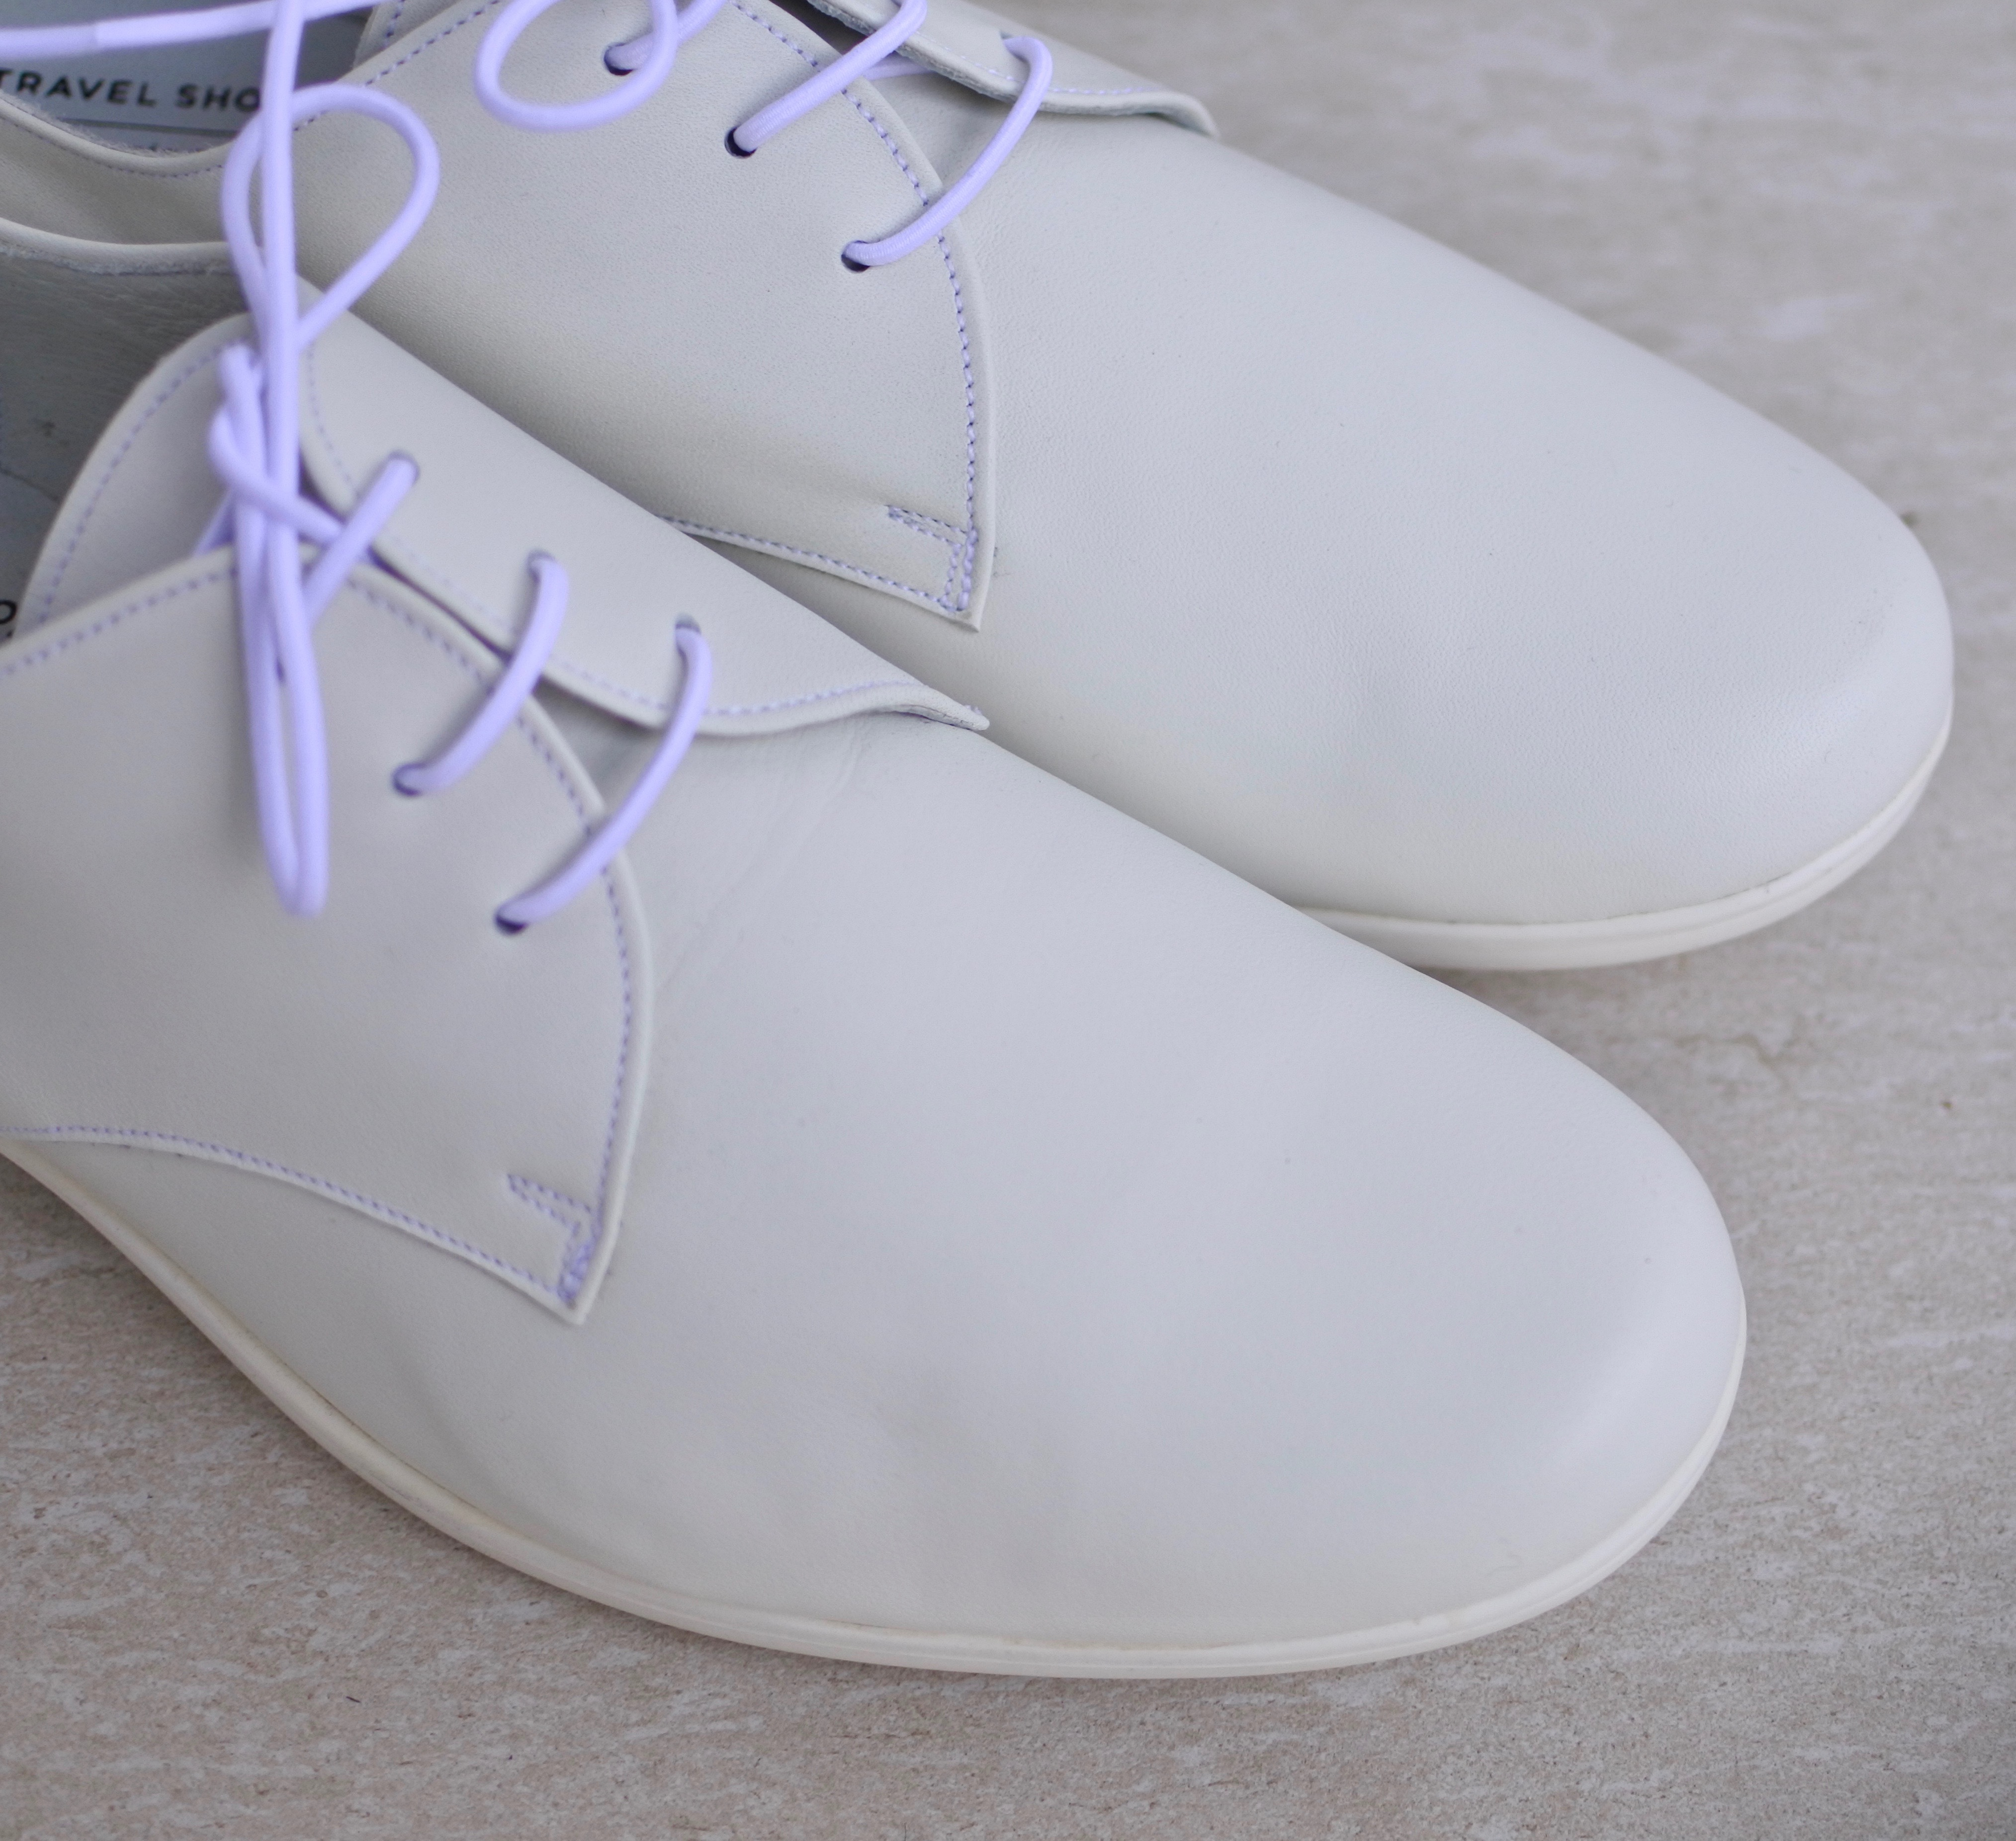 TRAVEL SHOES by chausser / プレーントゥレースアップシューズ